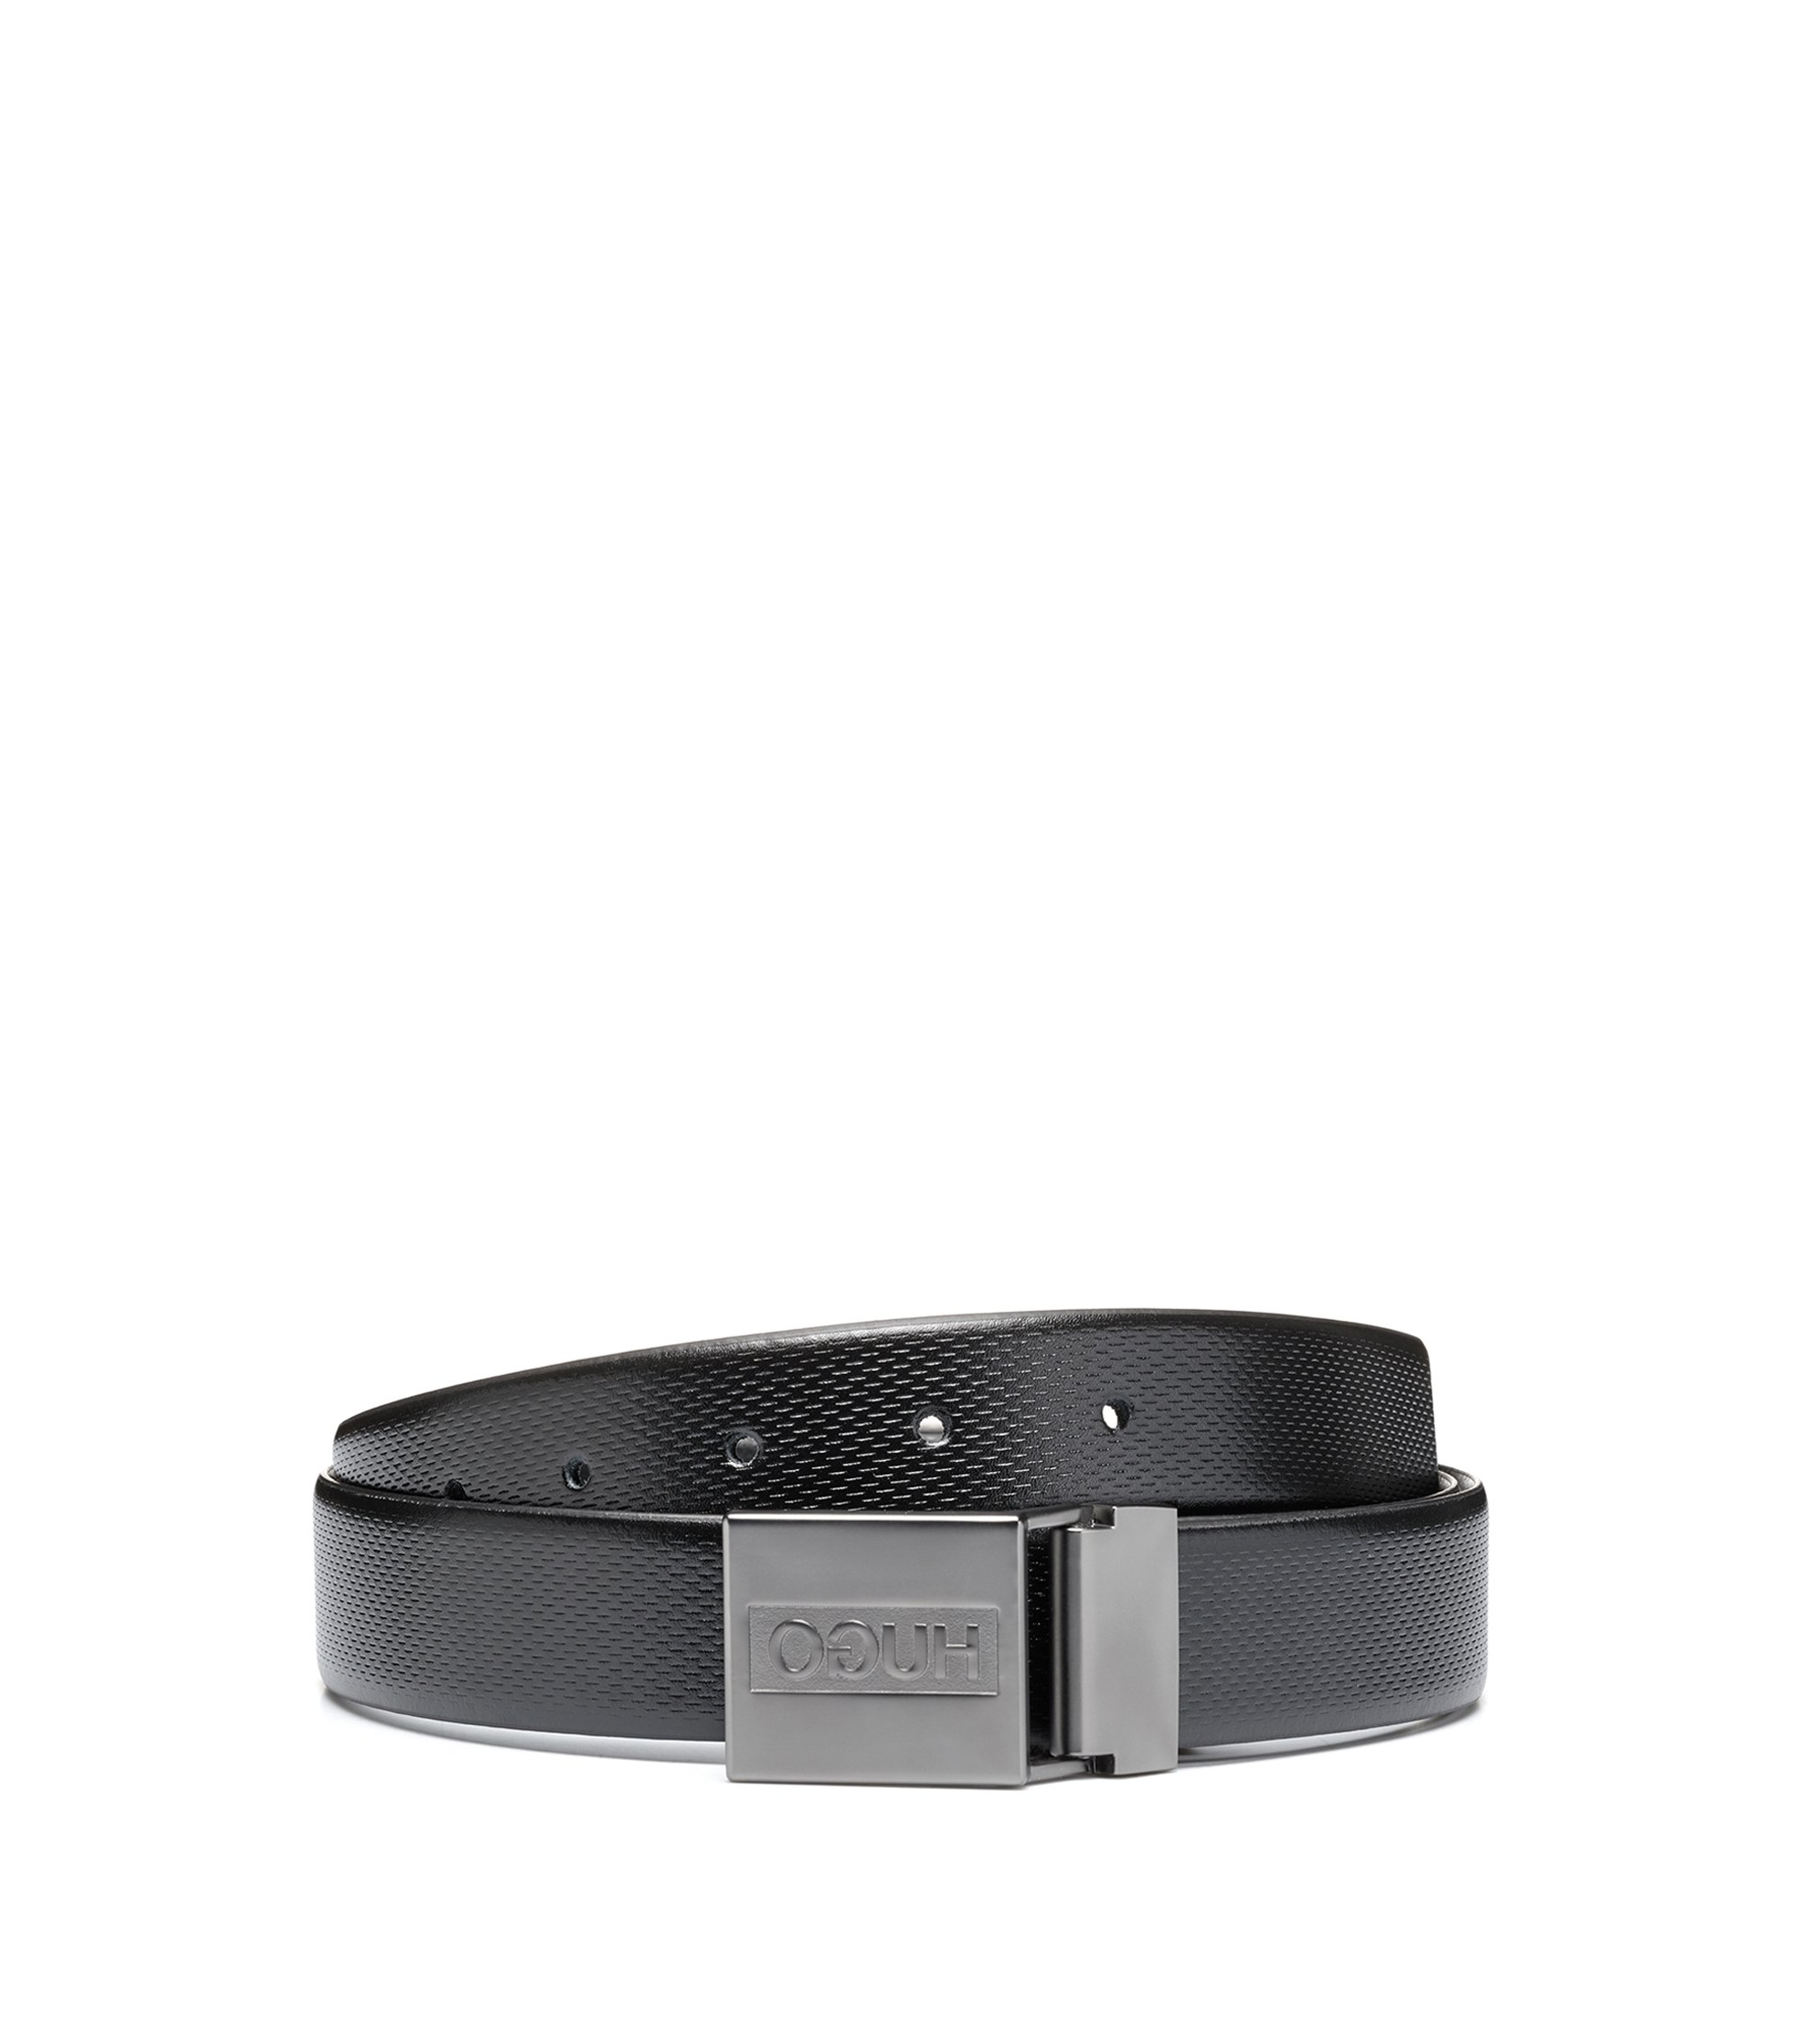 Double-buckle reversible leather belt in a gift box, Black